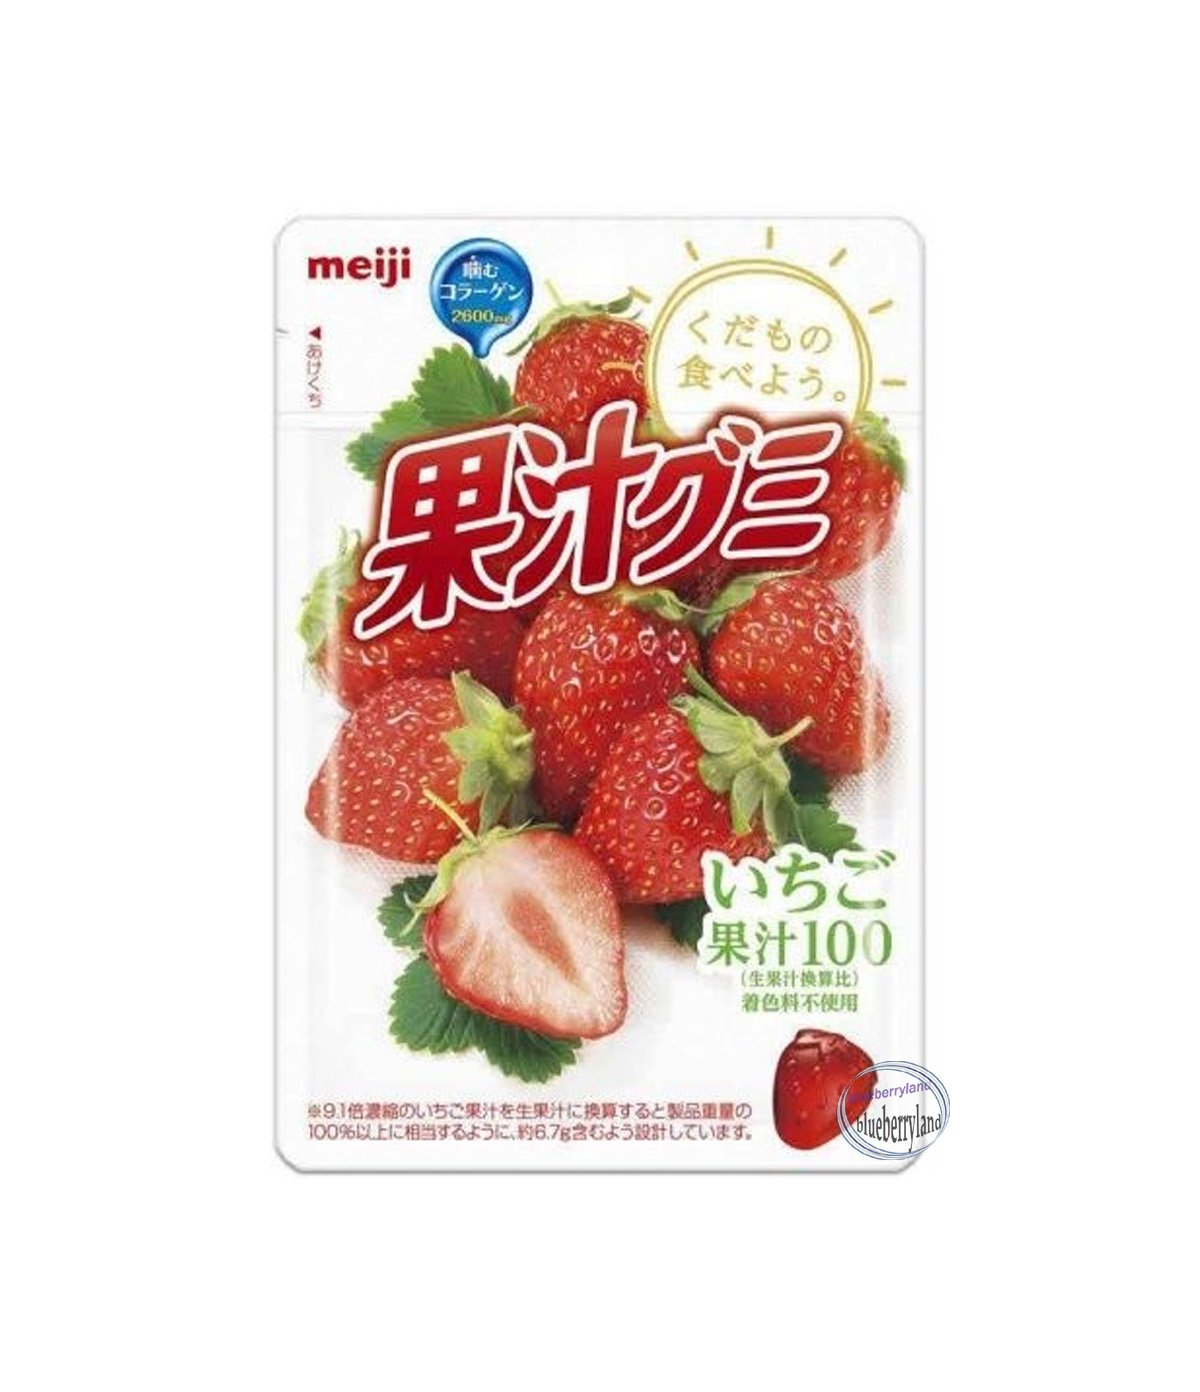 Japan Meiji Strawberry Flavor Fruit Juice Gummy Collagen sweet snack candy gummy